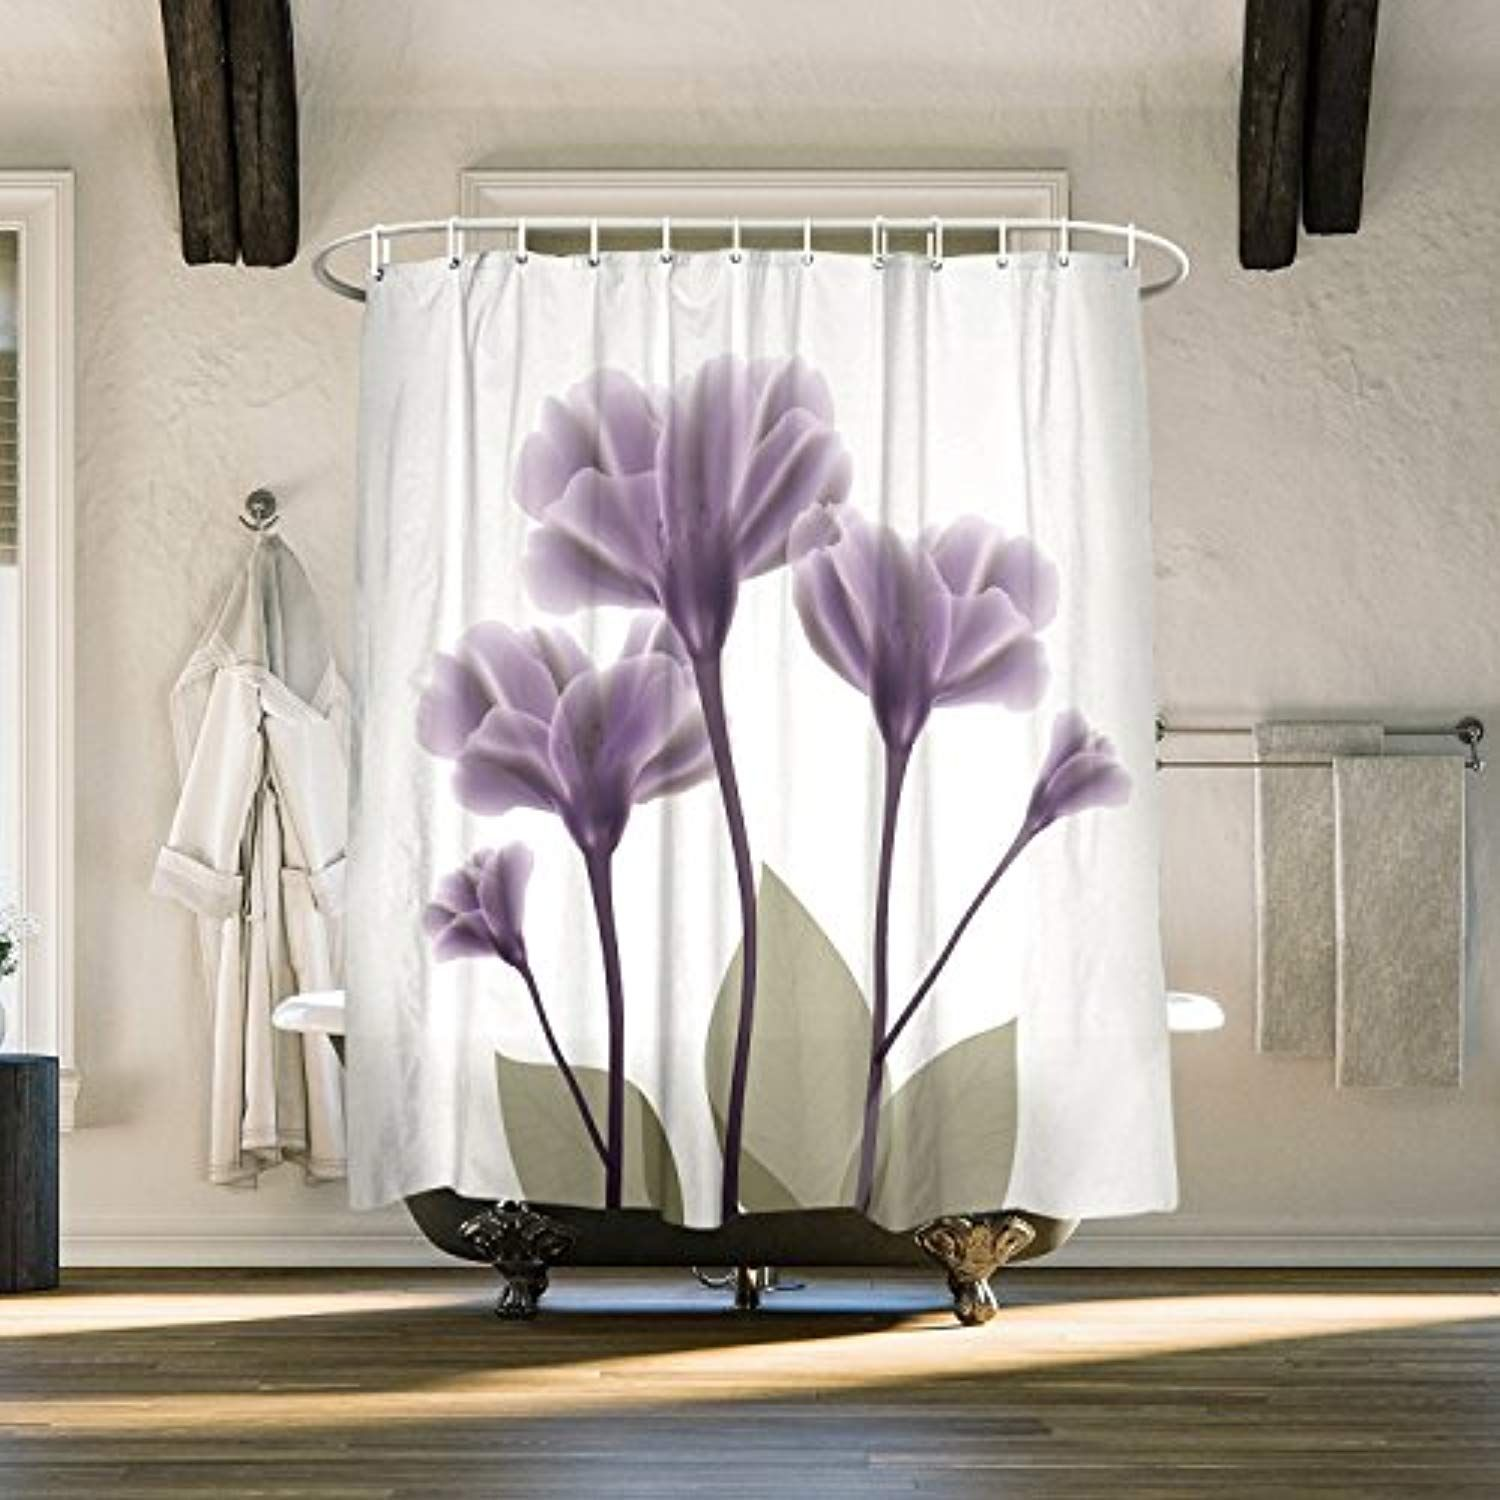 Family Decor Decration Colletion Decor Lavender Hope Shower Curtain Fabric Liner 72x78 Inch Read More At The Image Link This Is An Affil Fabric Shower Curtains Decor Curtains